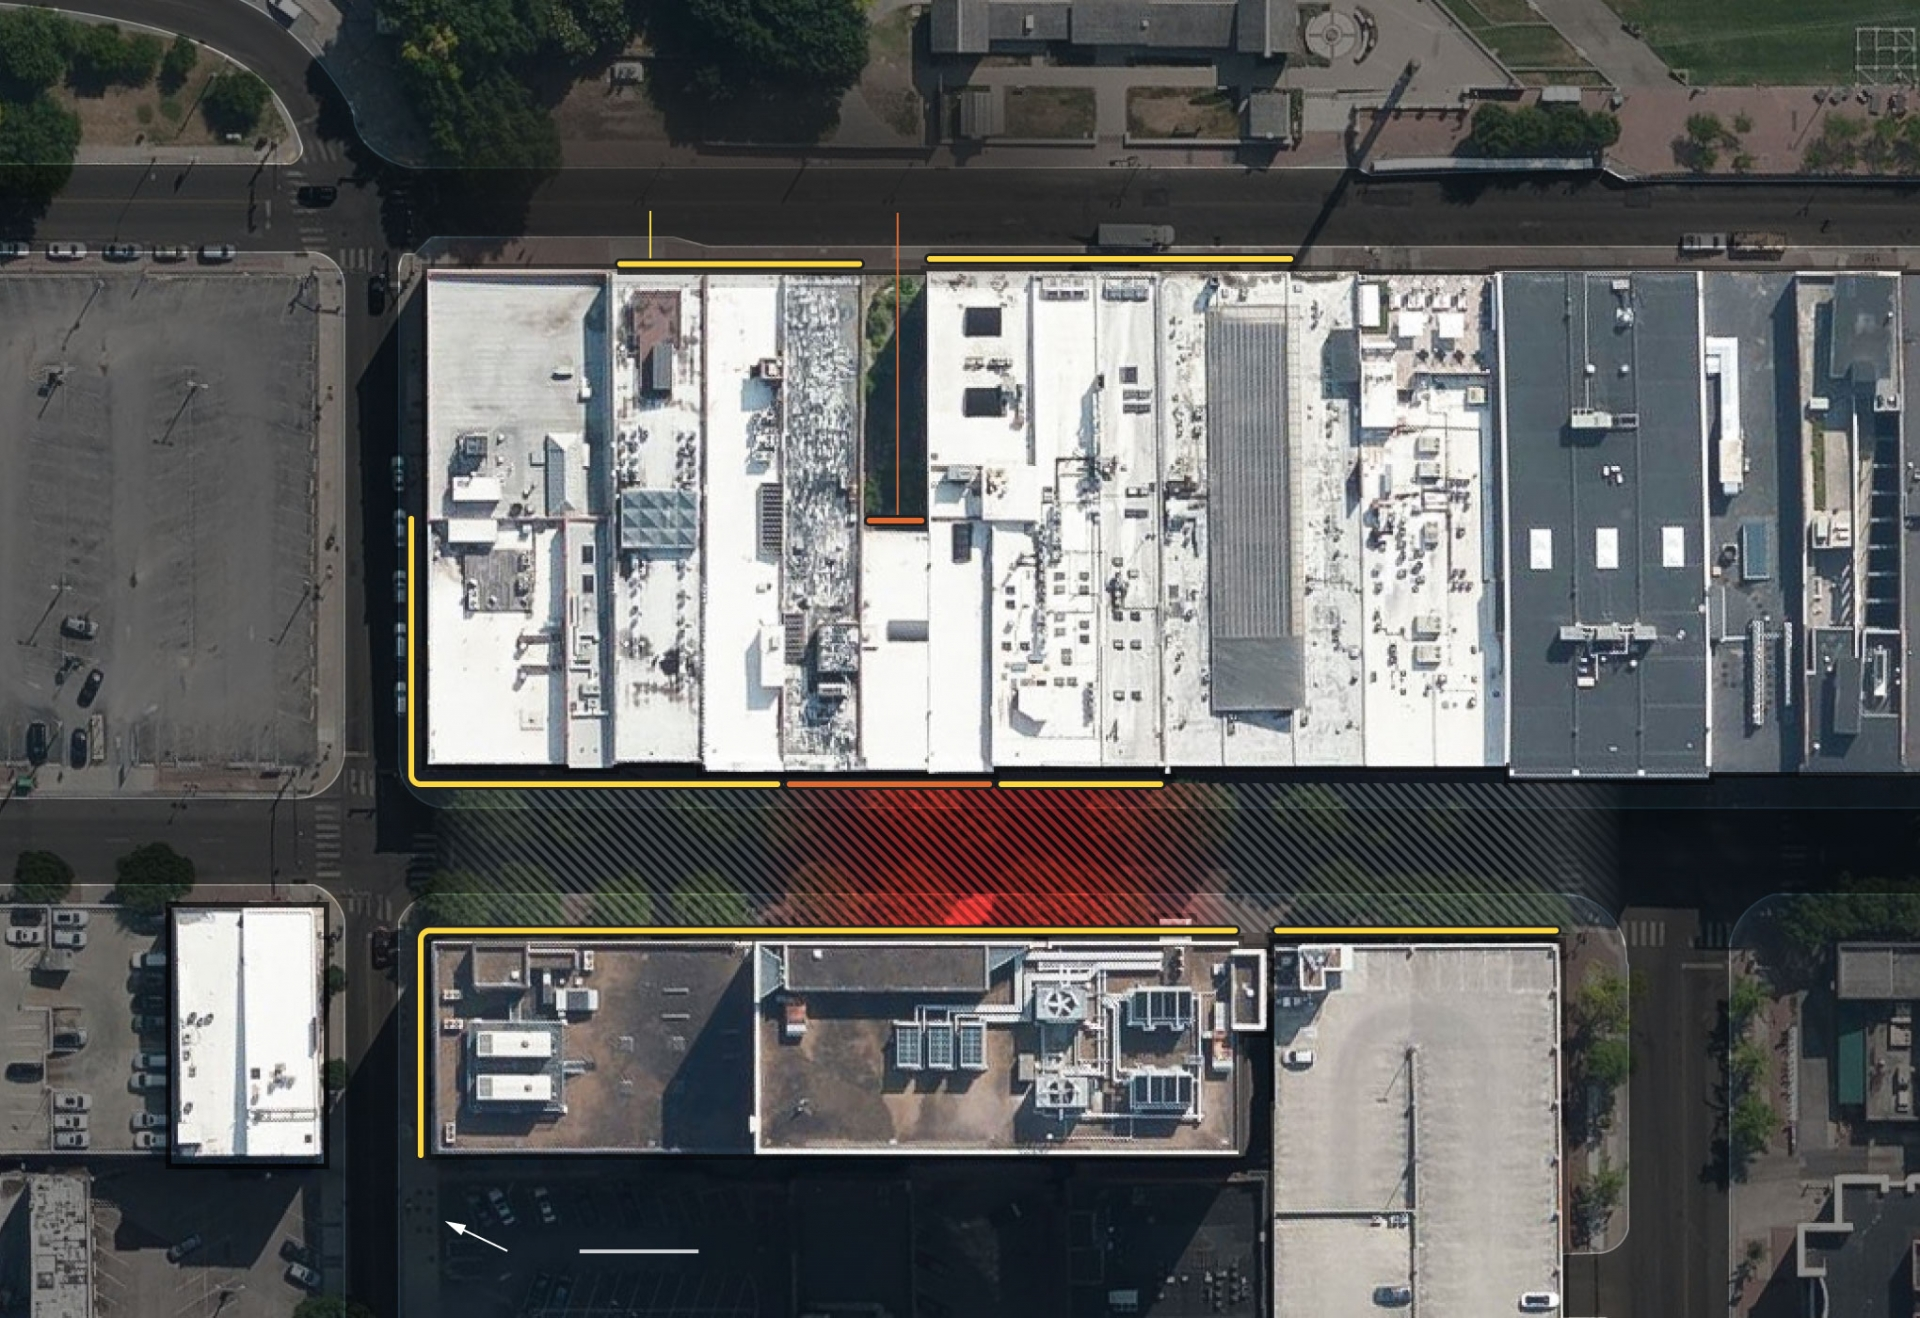 Highlighted areas below show where damage was visible in early photos and videos (Illustrations: NY Times)